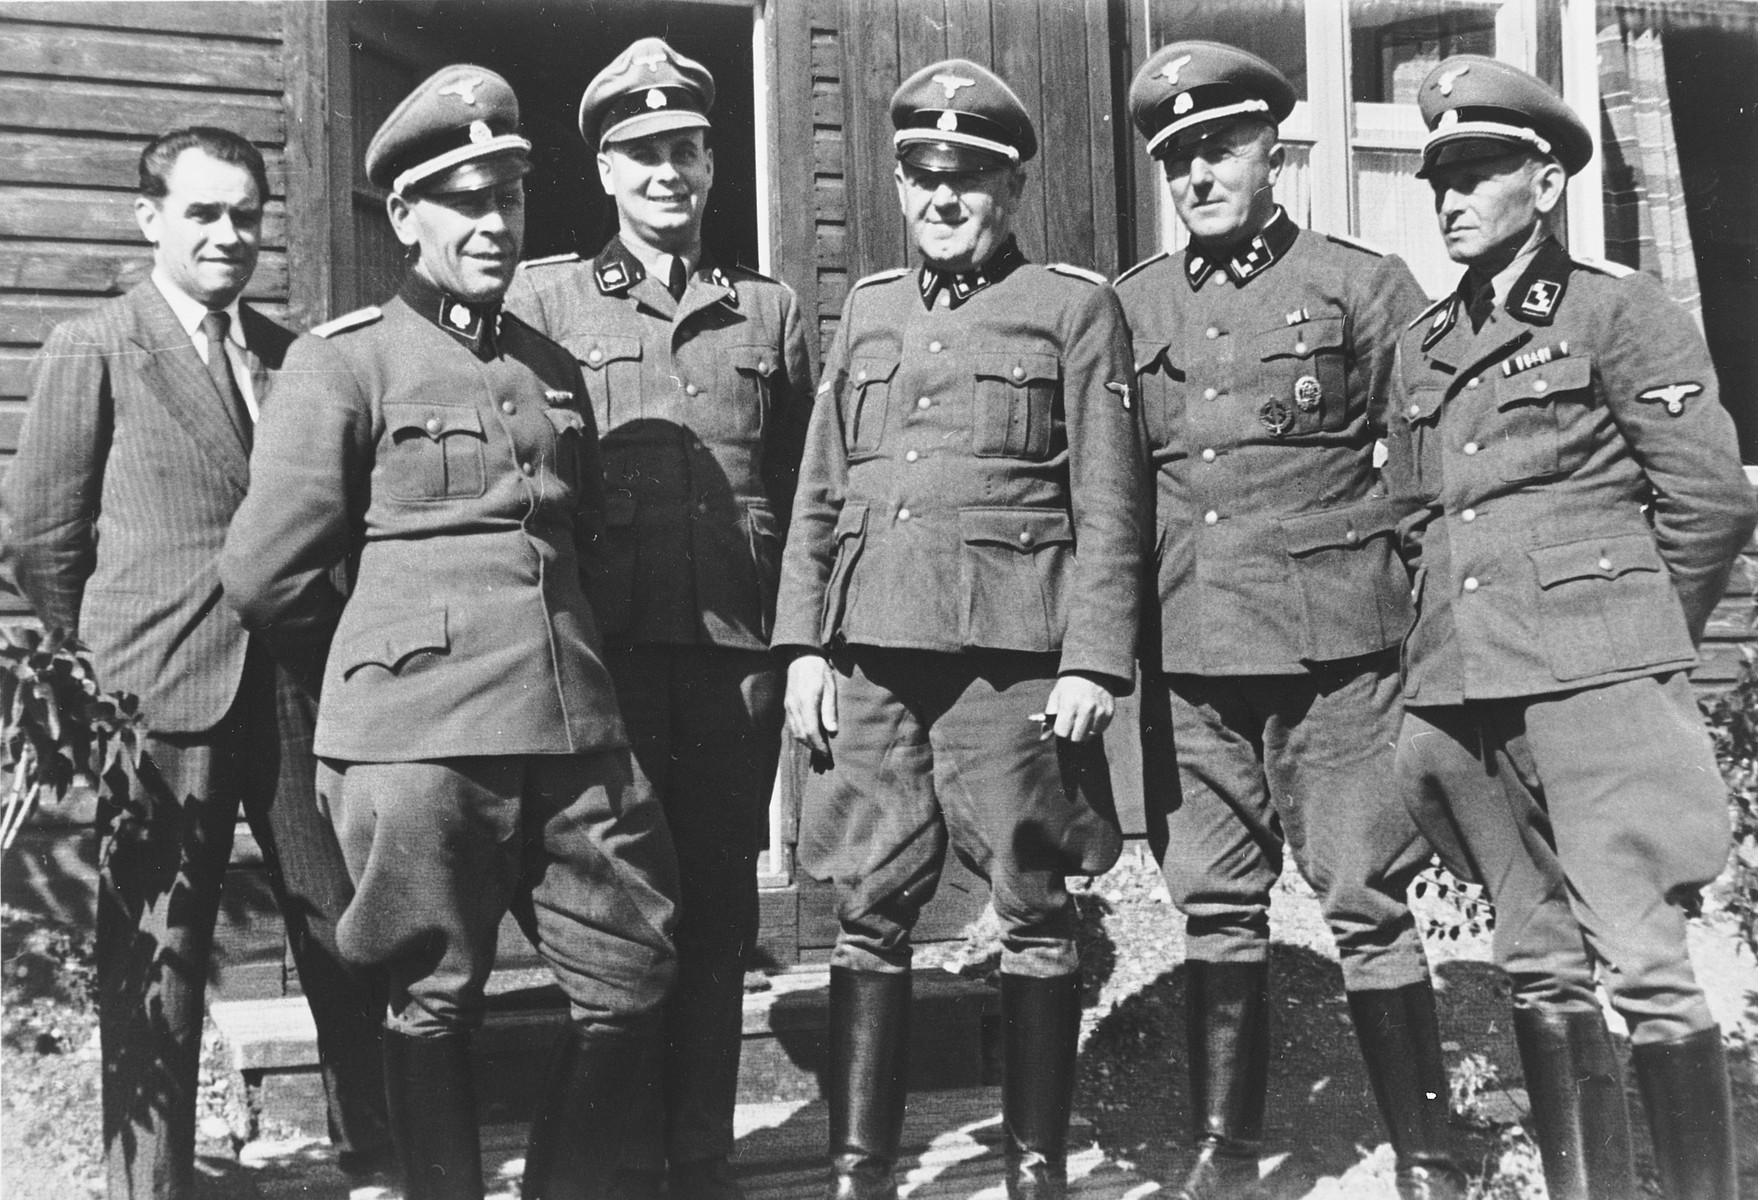 Group Portrait Of Ss Officers In Front Of A Barrack In The